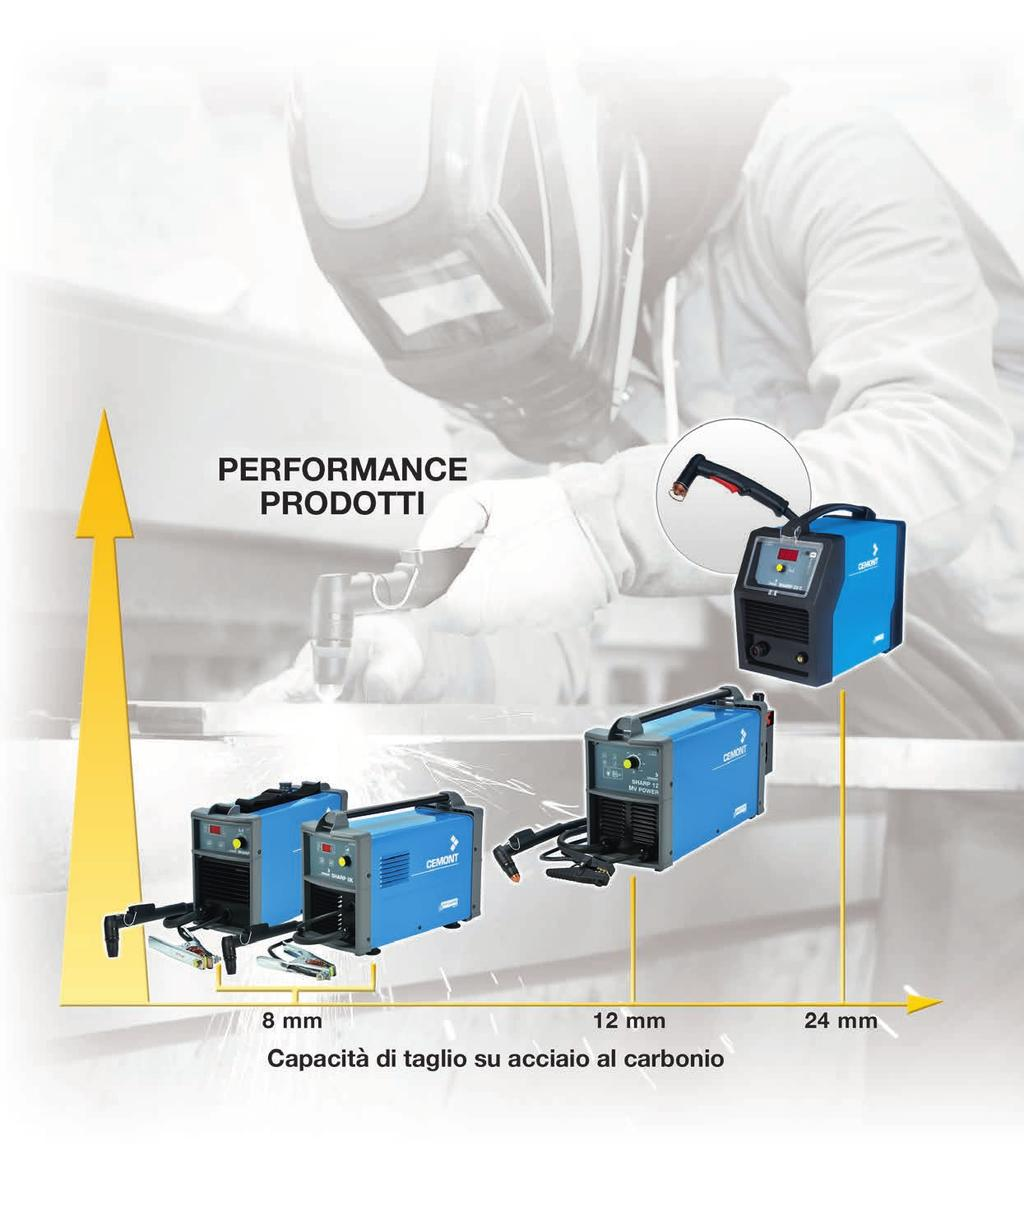 workshop applications maintenance technology RP all metals plasma cutting drag cutting inverter ergonomic high duty cycle performance advanced DATI TECNICI Nome Prodotto Alimentazione Peso (kg)